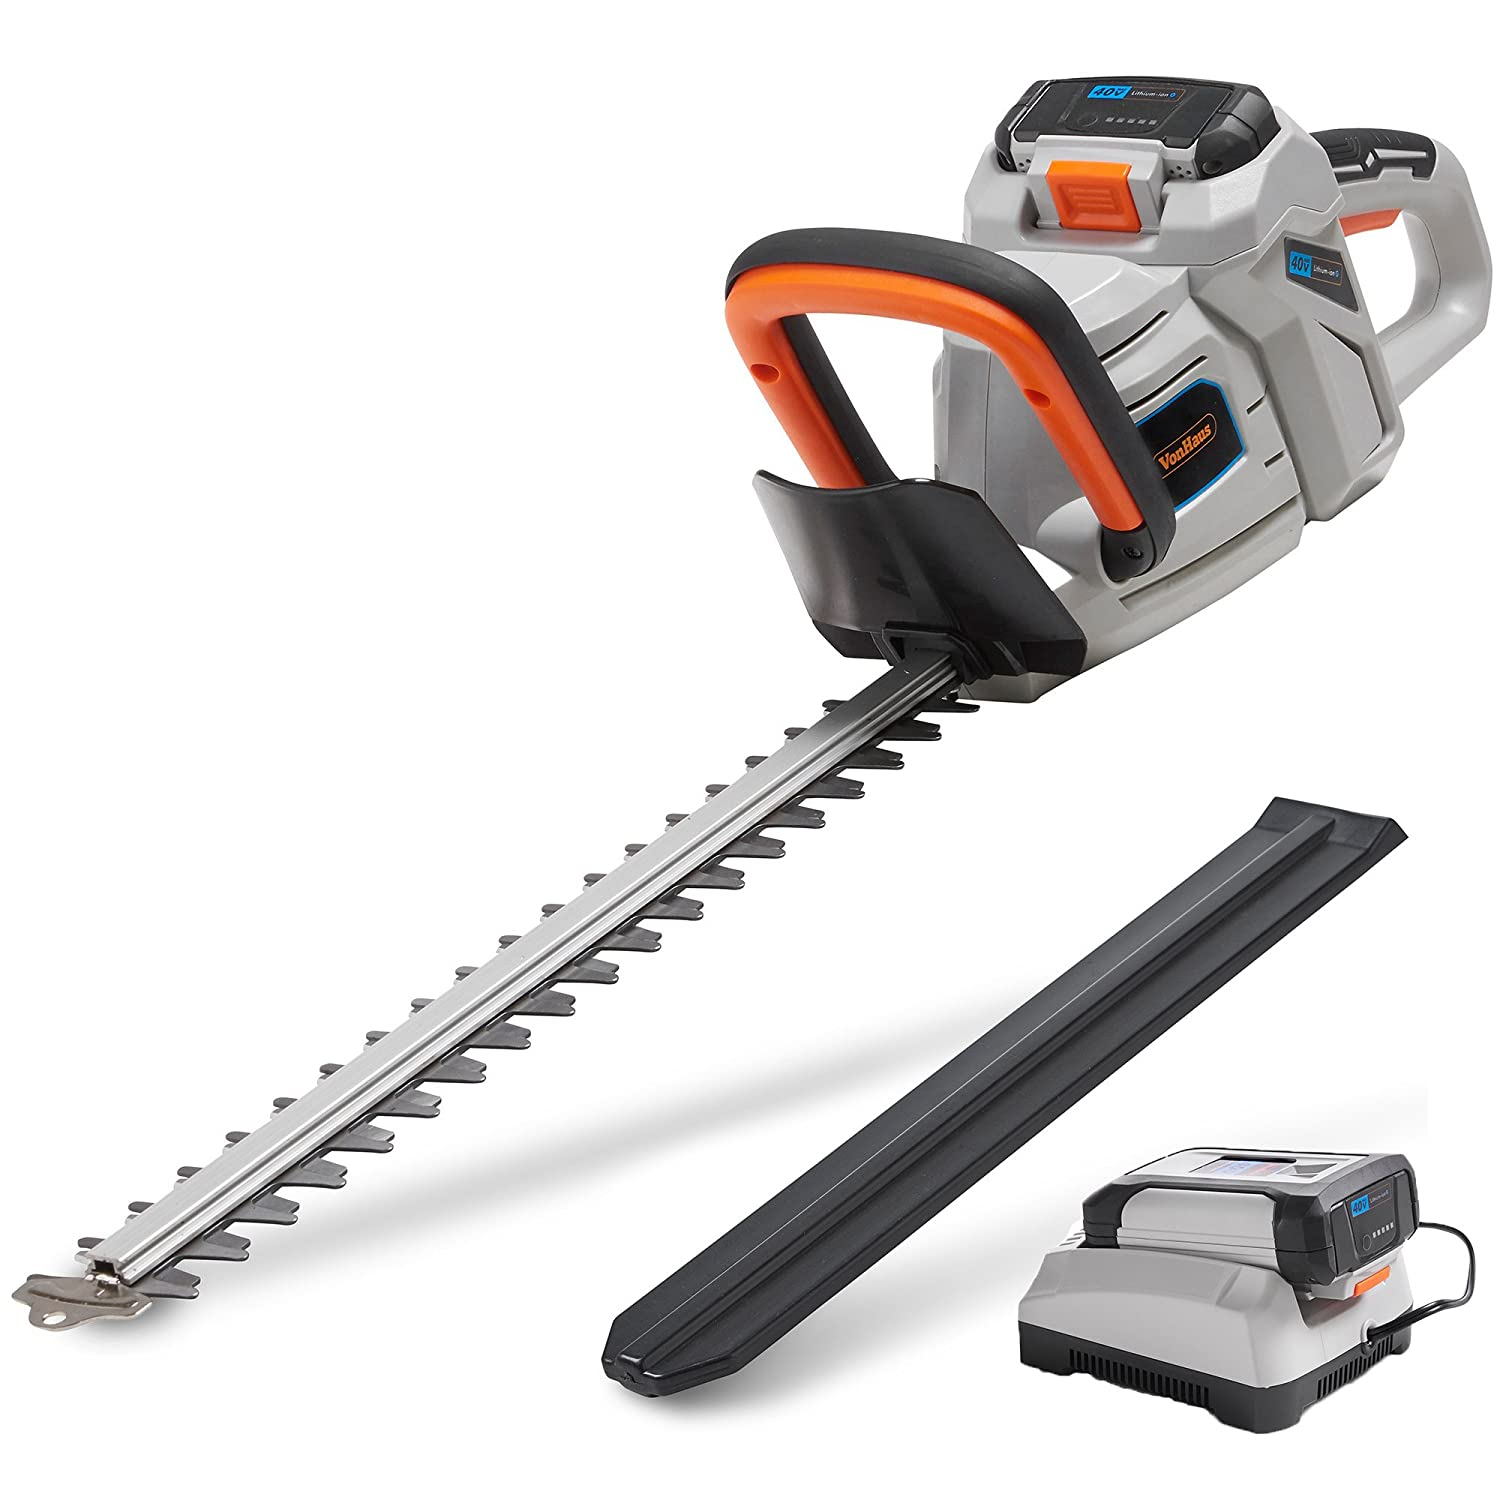 "VonHaus 40V Max 20"" Dual Action Cordless Hedge Trimmer 2.0Ah Lithium-Ion Battery Charger Kit Included"